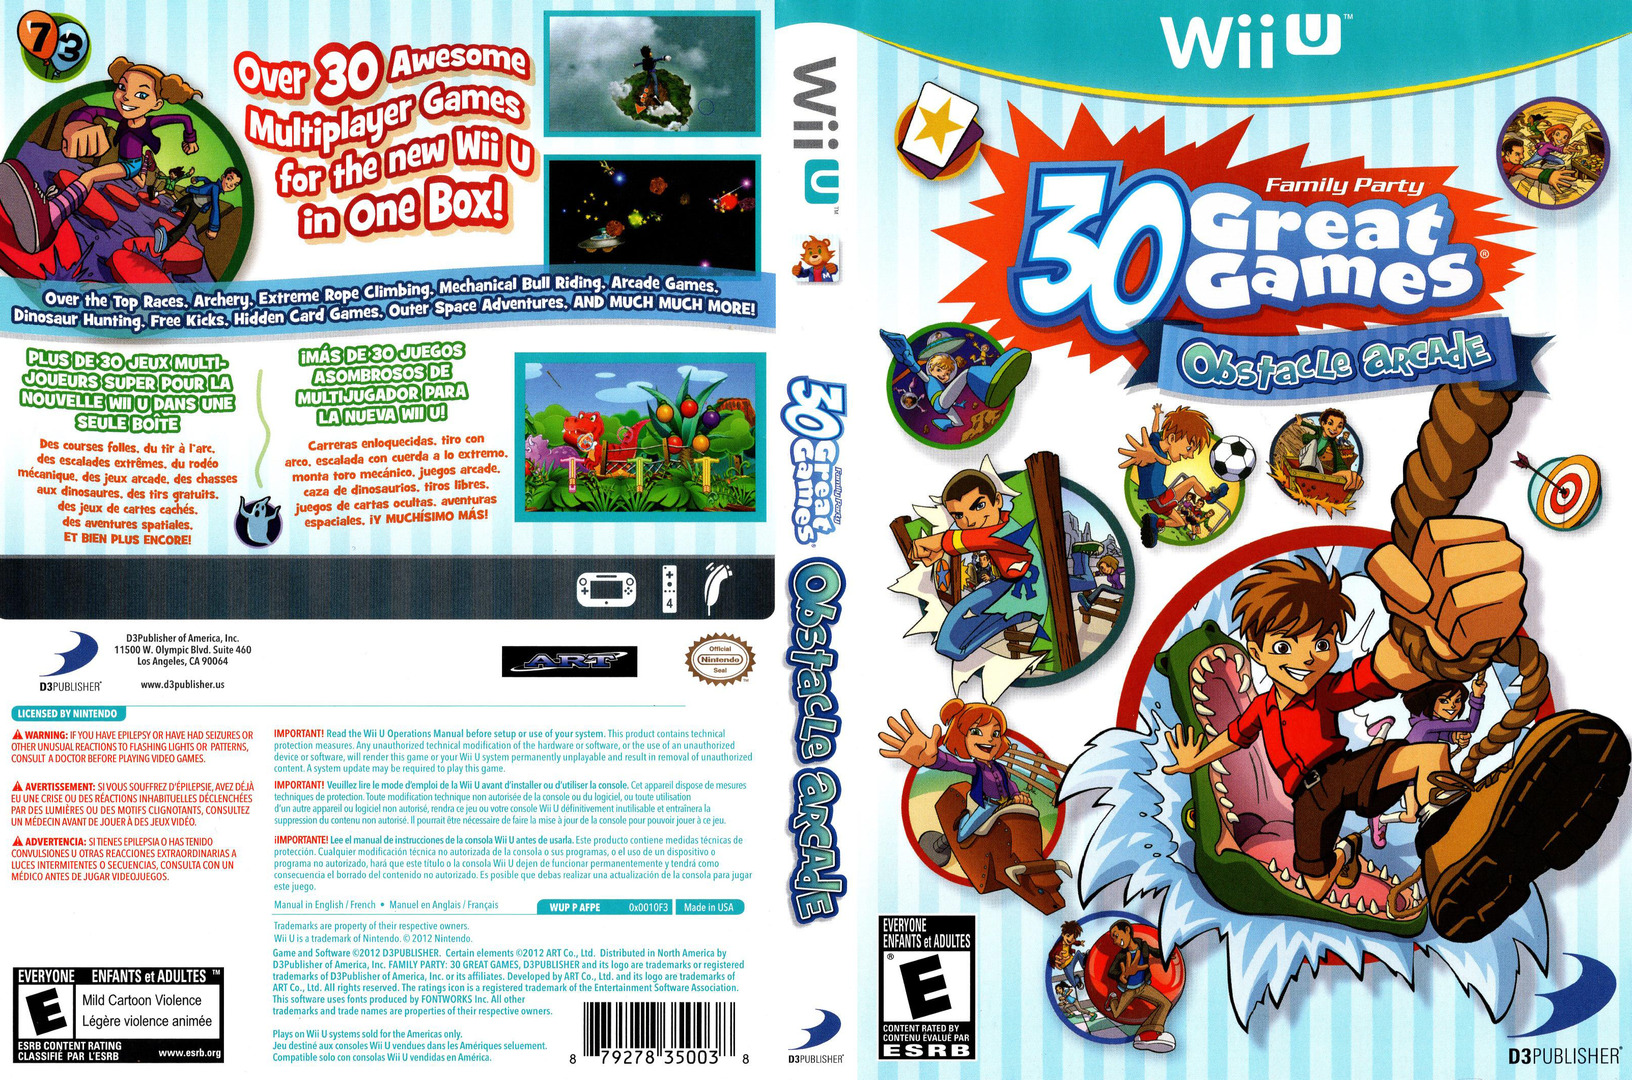 Family Party: 30 Great Games Obstacle Arcade WiiU coverfullHQ (AFPEG9)